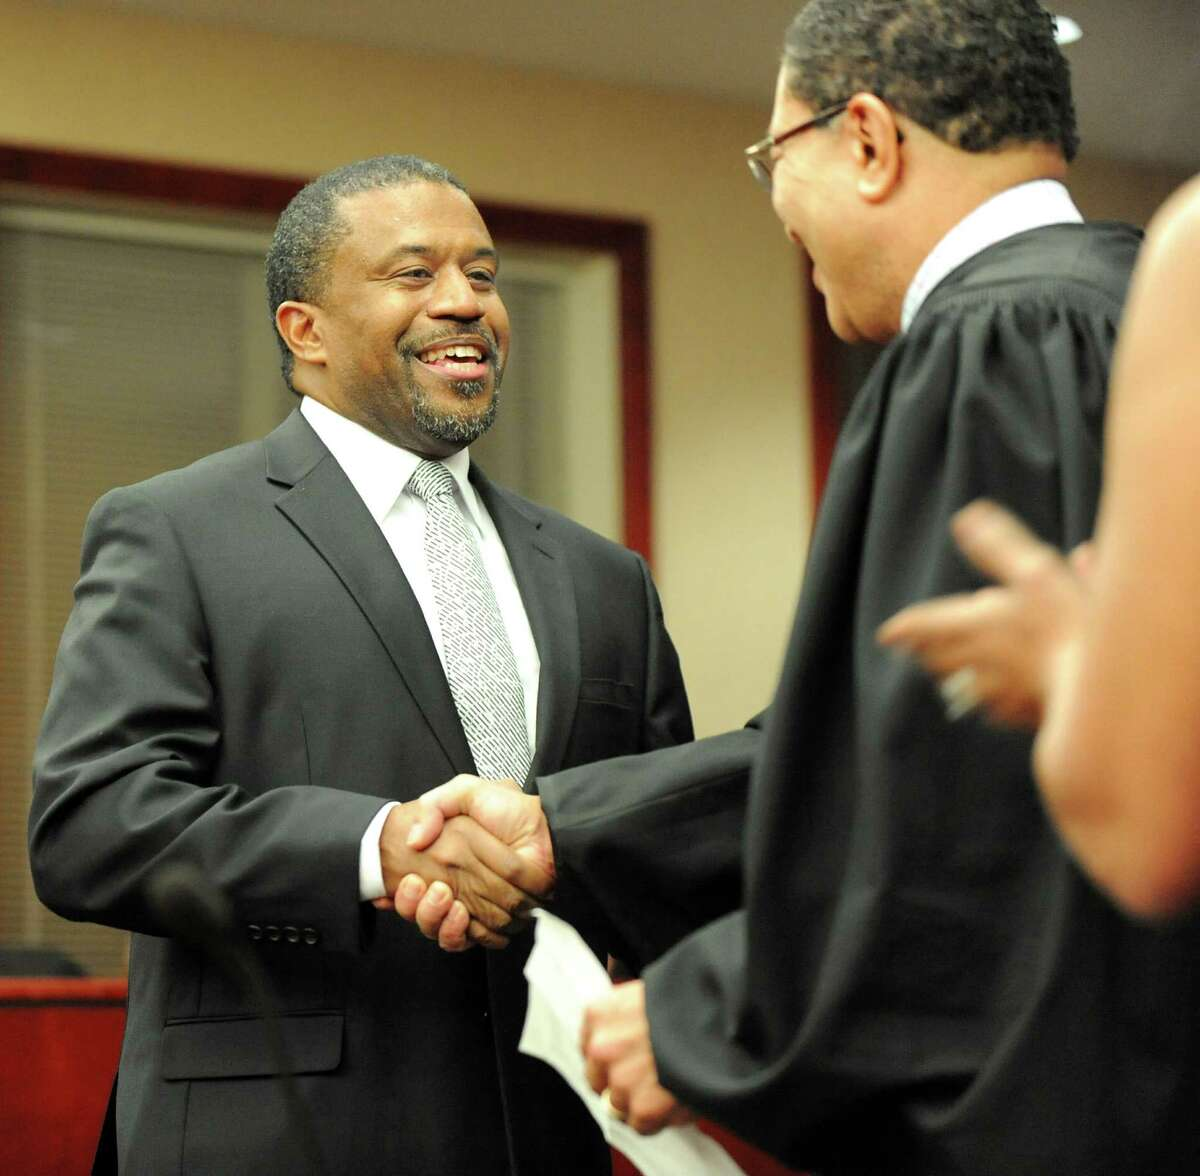 Albany County Family Court Judge Richard Rivera, left, shakes hands with Judge Randolph Treece during Rivera's swearing in ceremony on Friday Dec. 19, 2014, at Albany County Family Court in Albany, N.Y. He is the first Hispanic elected official in any countywide office. (Cindy Schultz / Times Union)